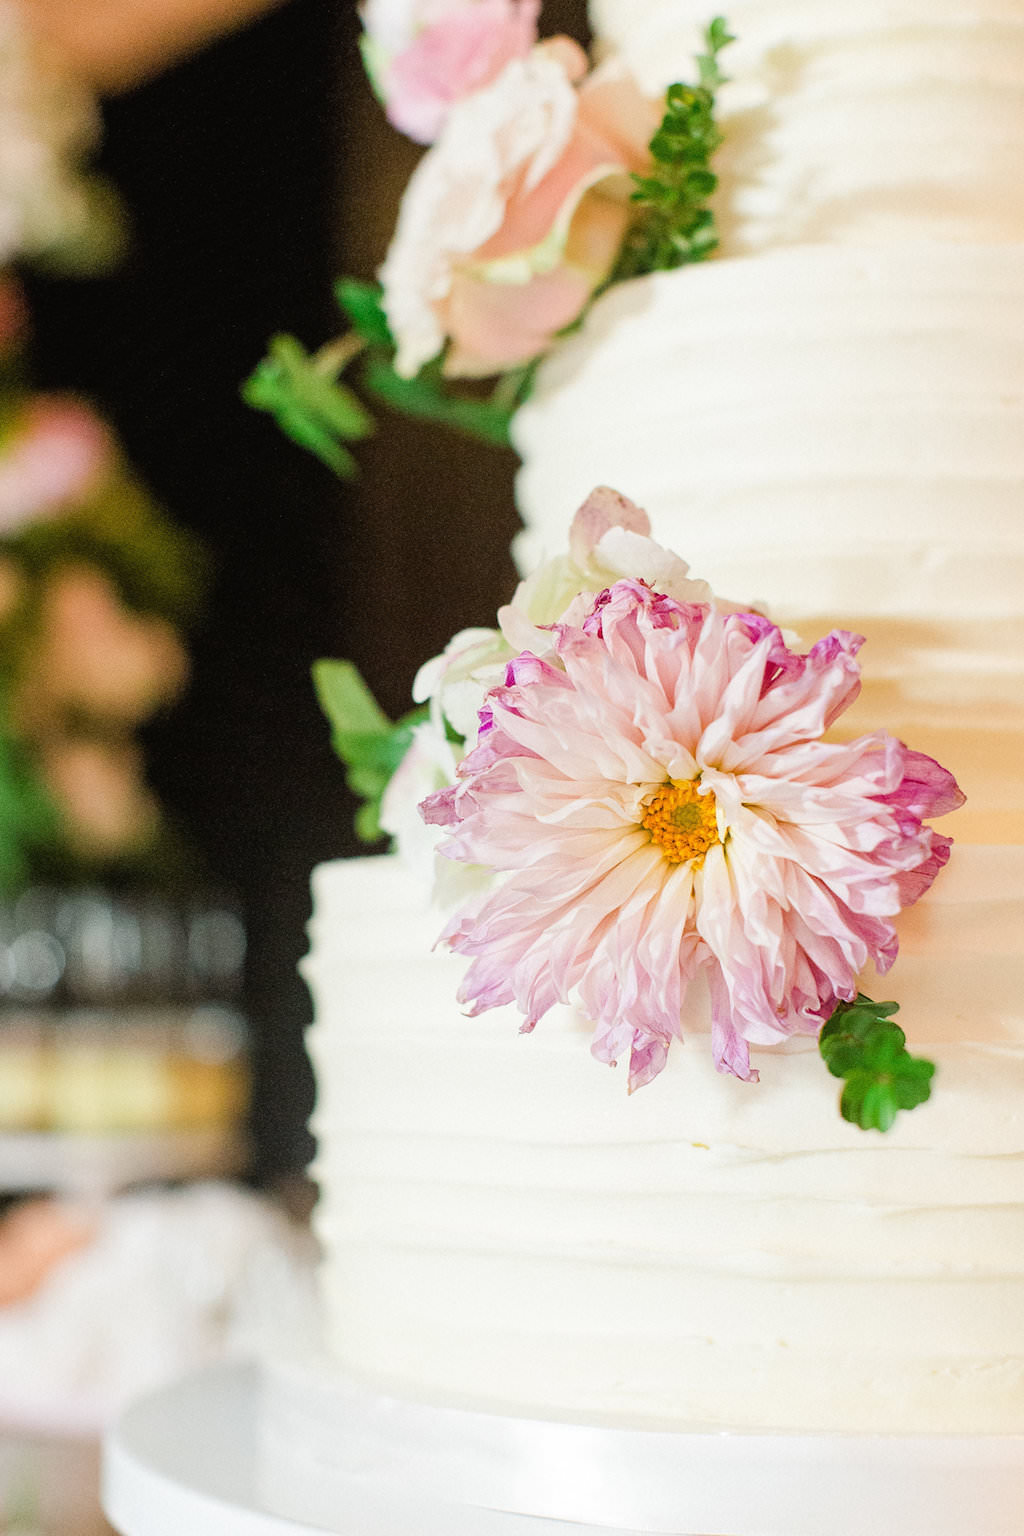 Round White Wedding Cake with Pink Flowers and Greenery